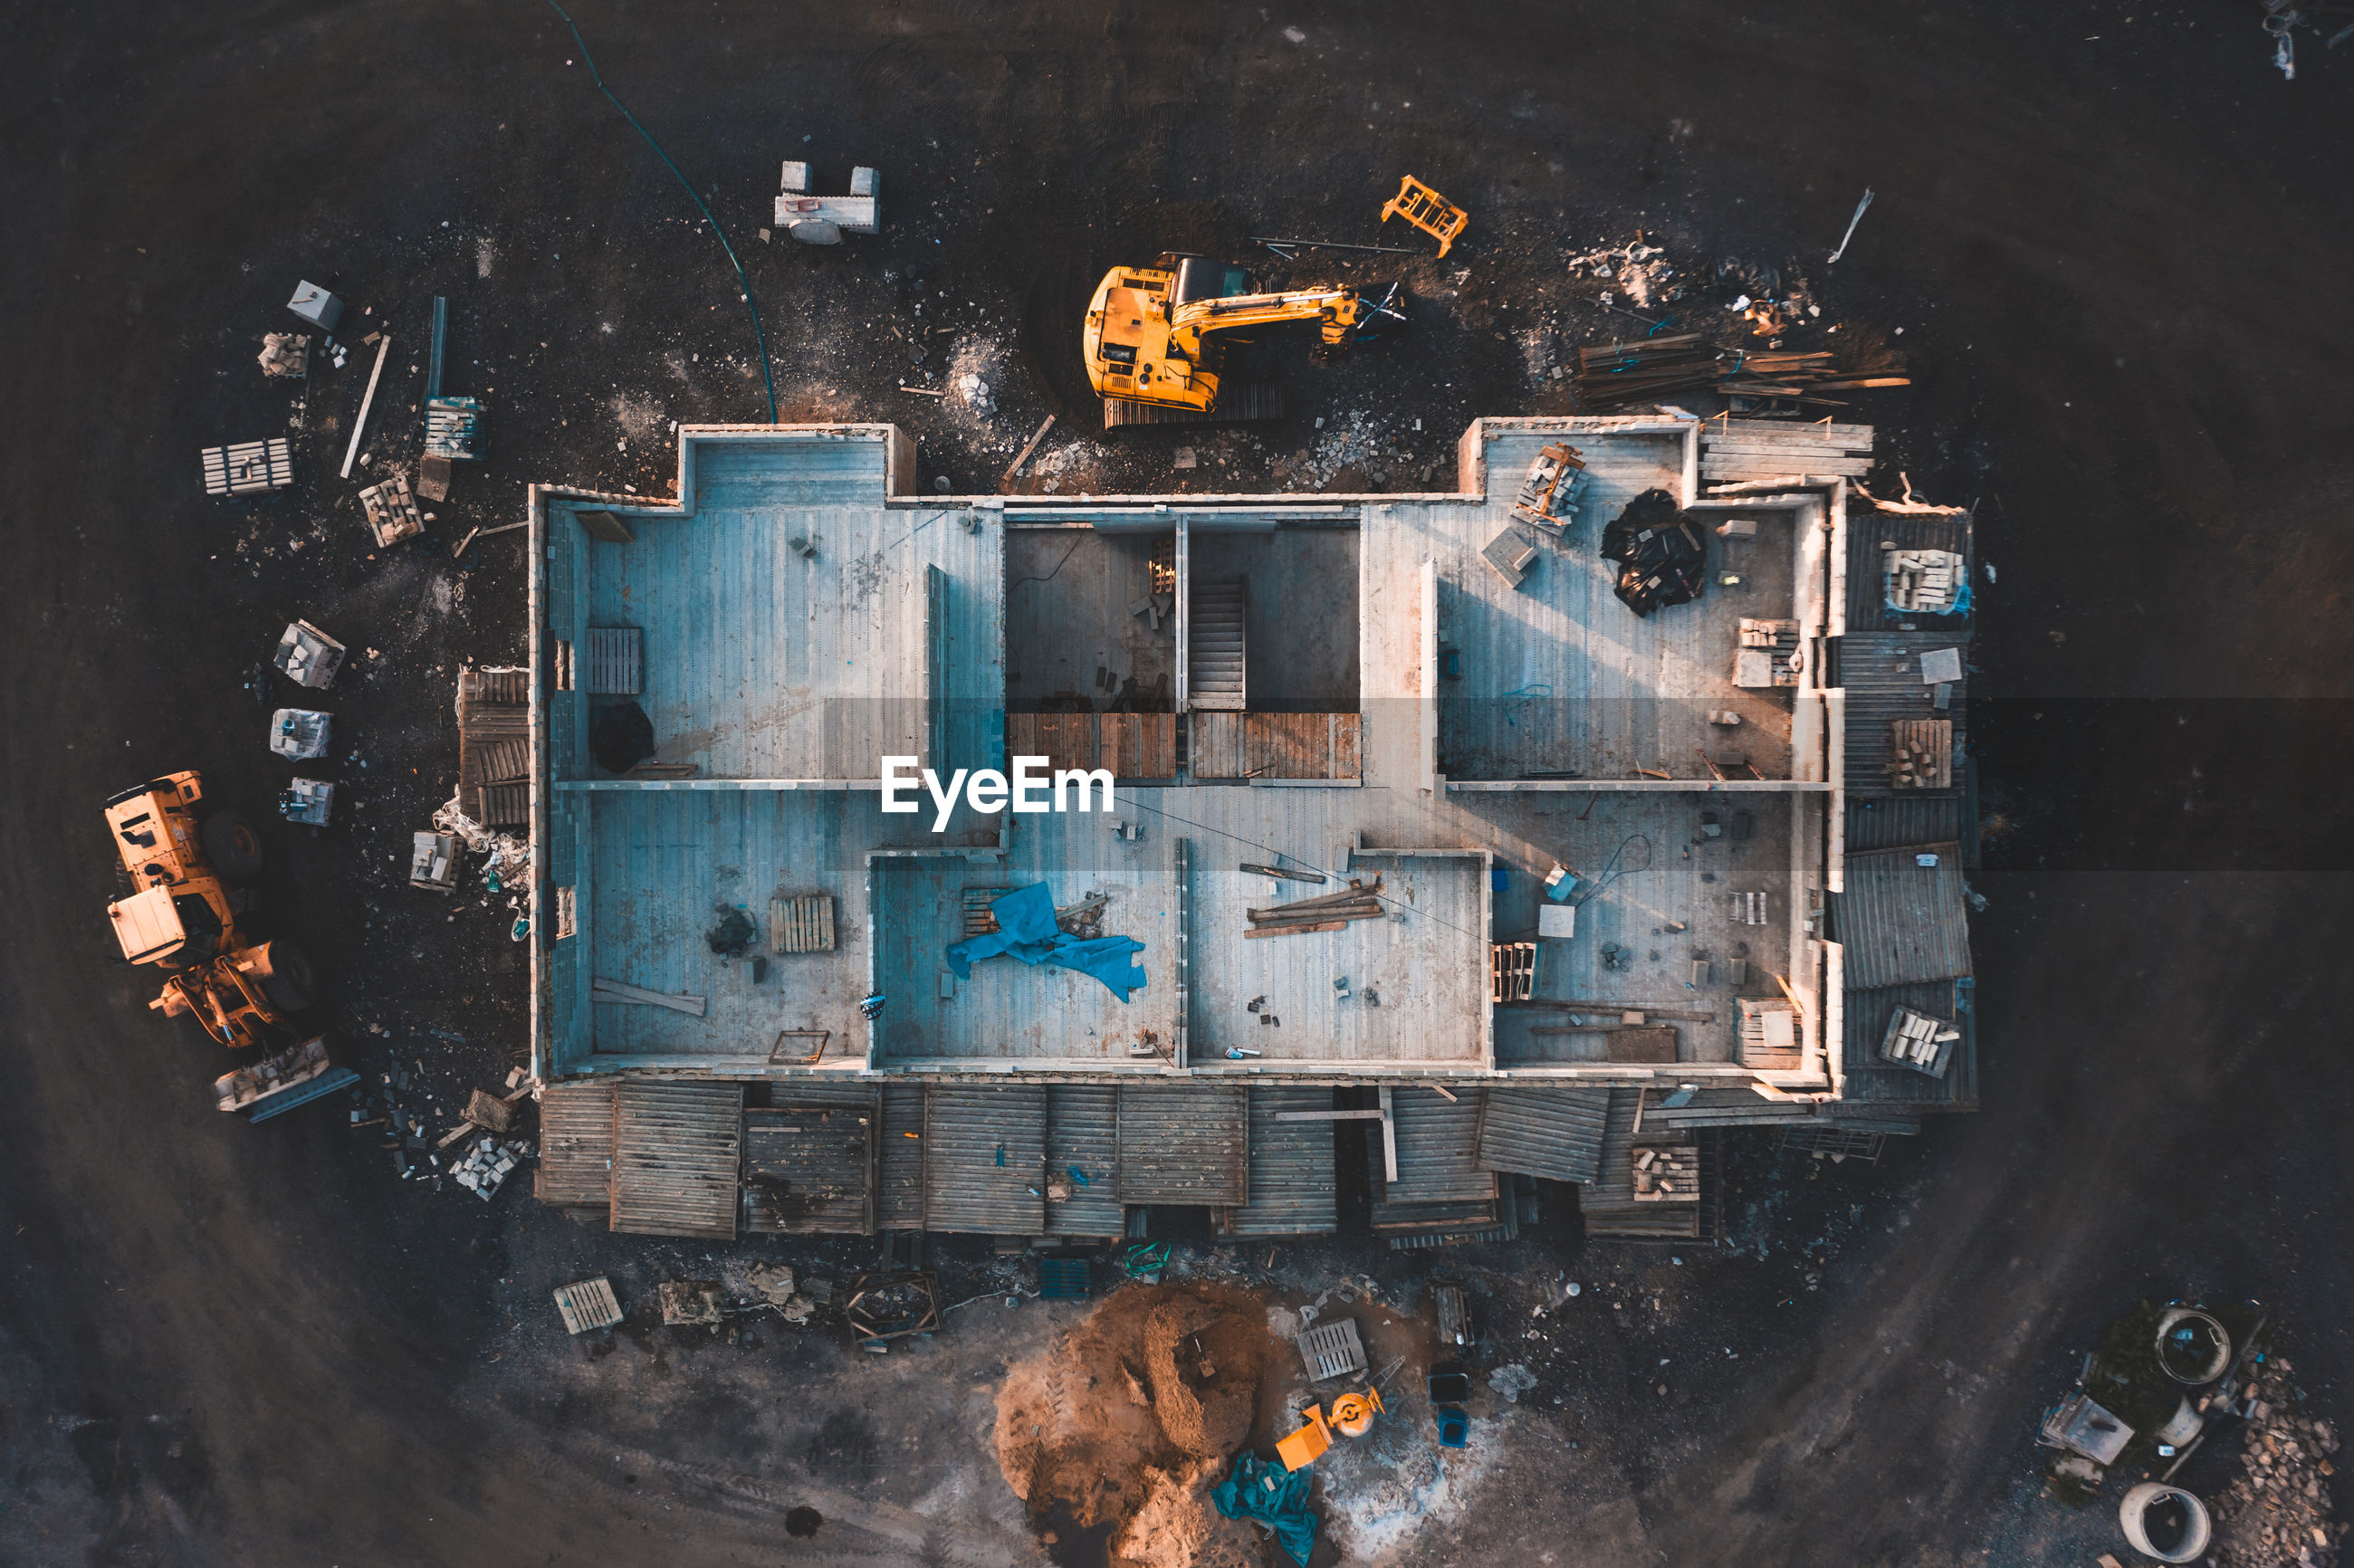 HIGH ANGLE VIEW OF OLD MACHINE IN ABANDONED BUILDING